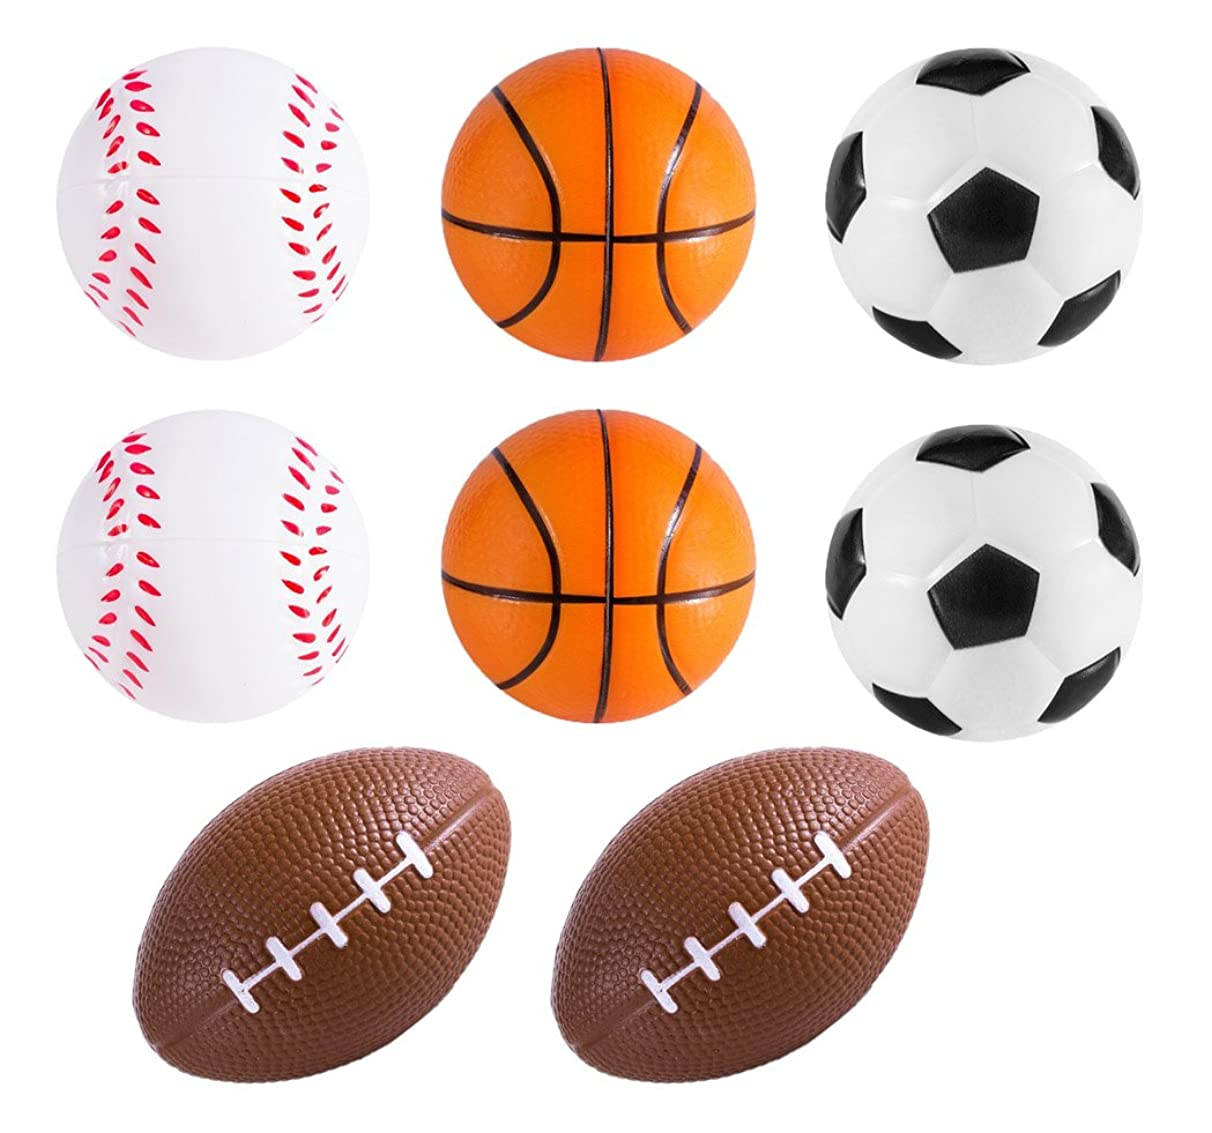 Black Duck Brand Set of Sports Themed Mini Stress Balls Squeeze Foam for Anxiety Relief, Relaxation, Party Favor Toy, or Gifts!